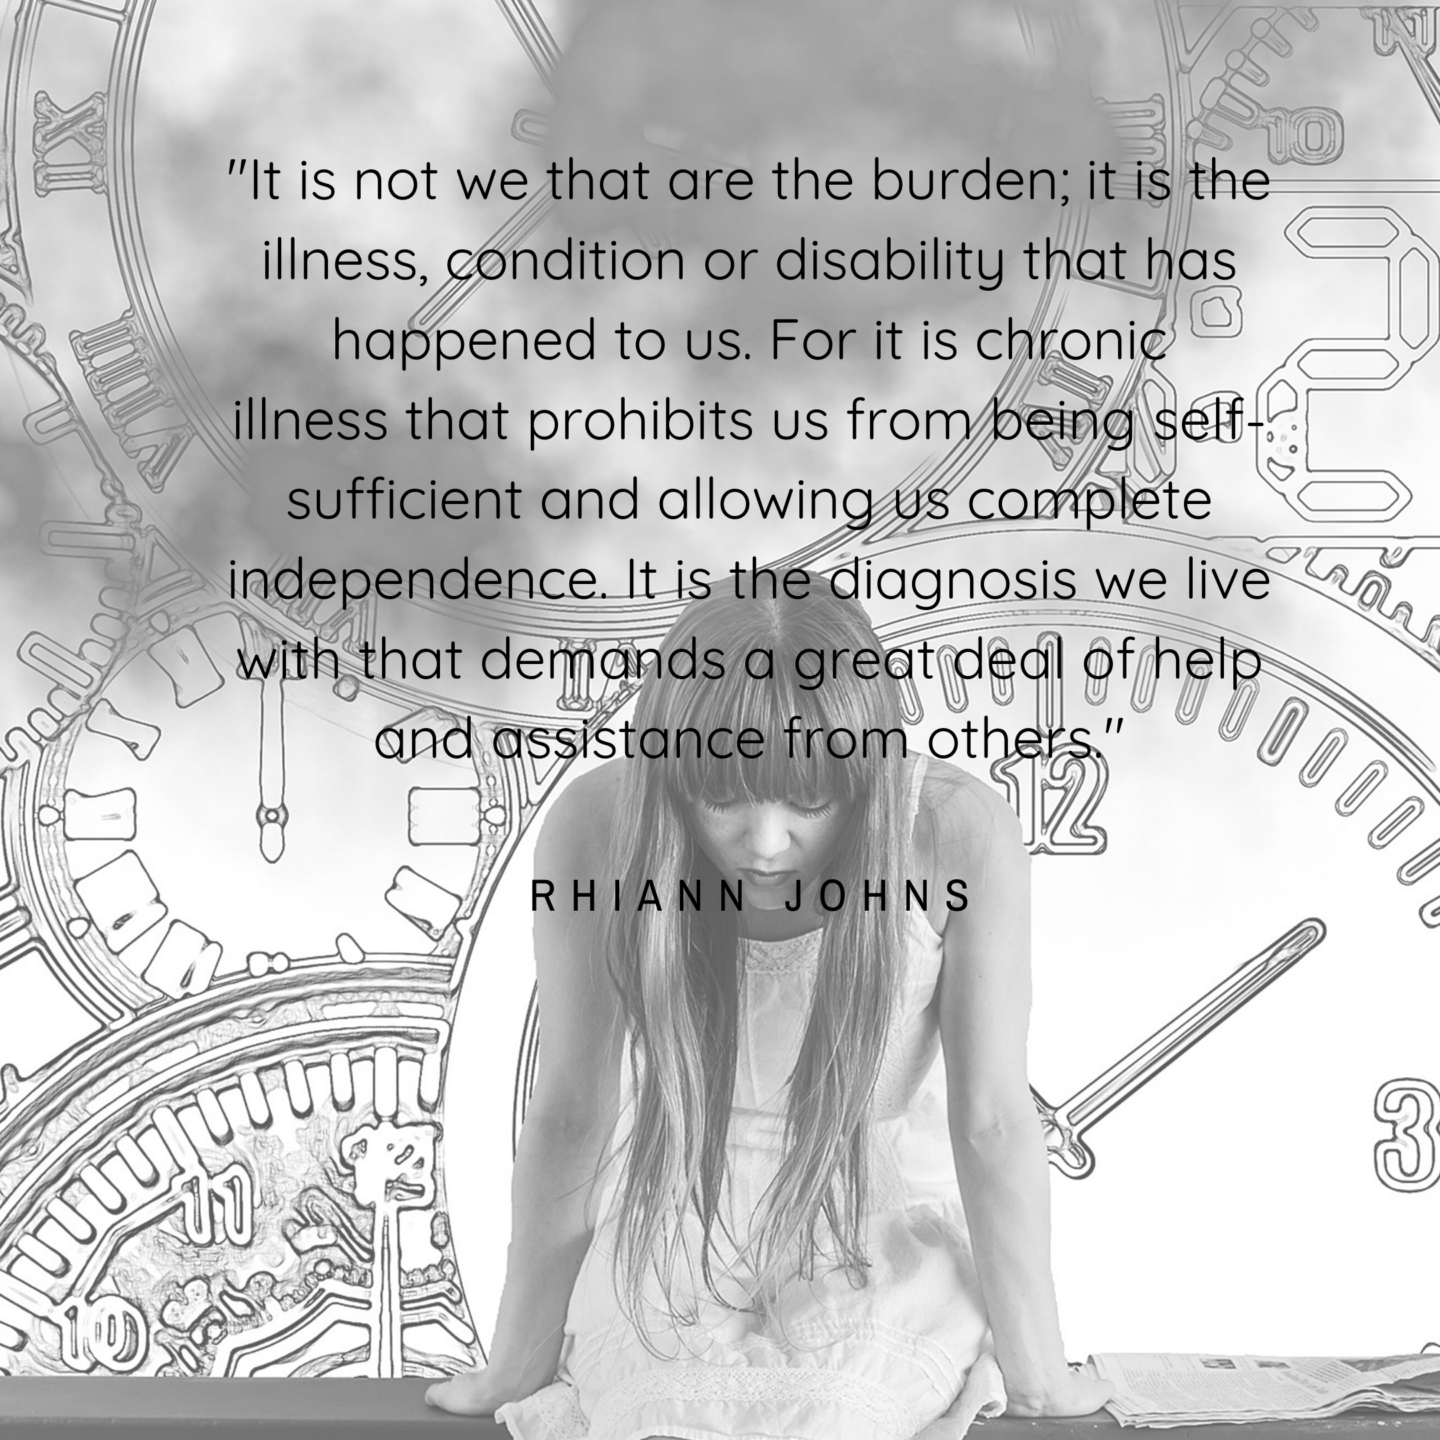 Chronic Illness is the burden and not you